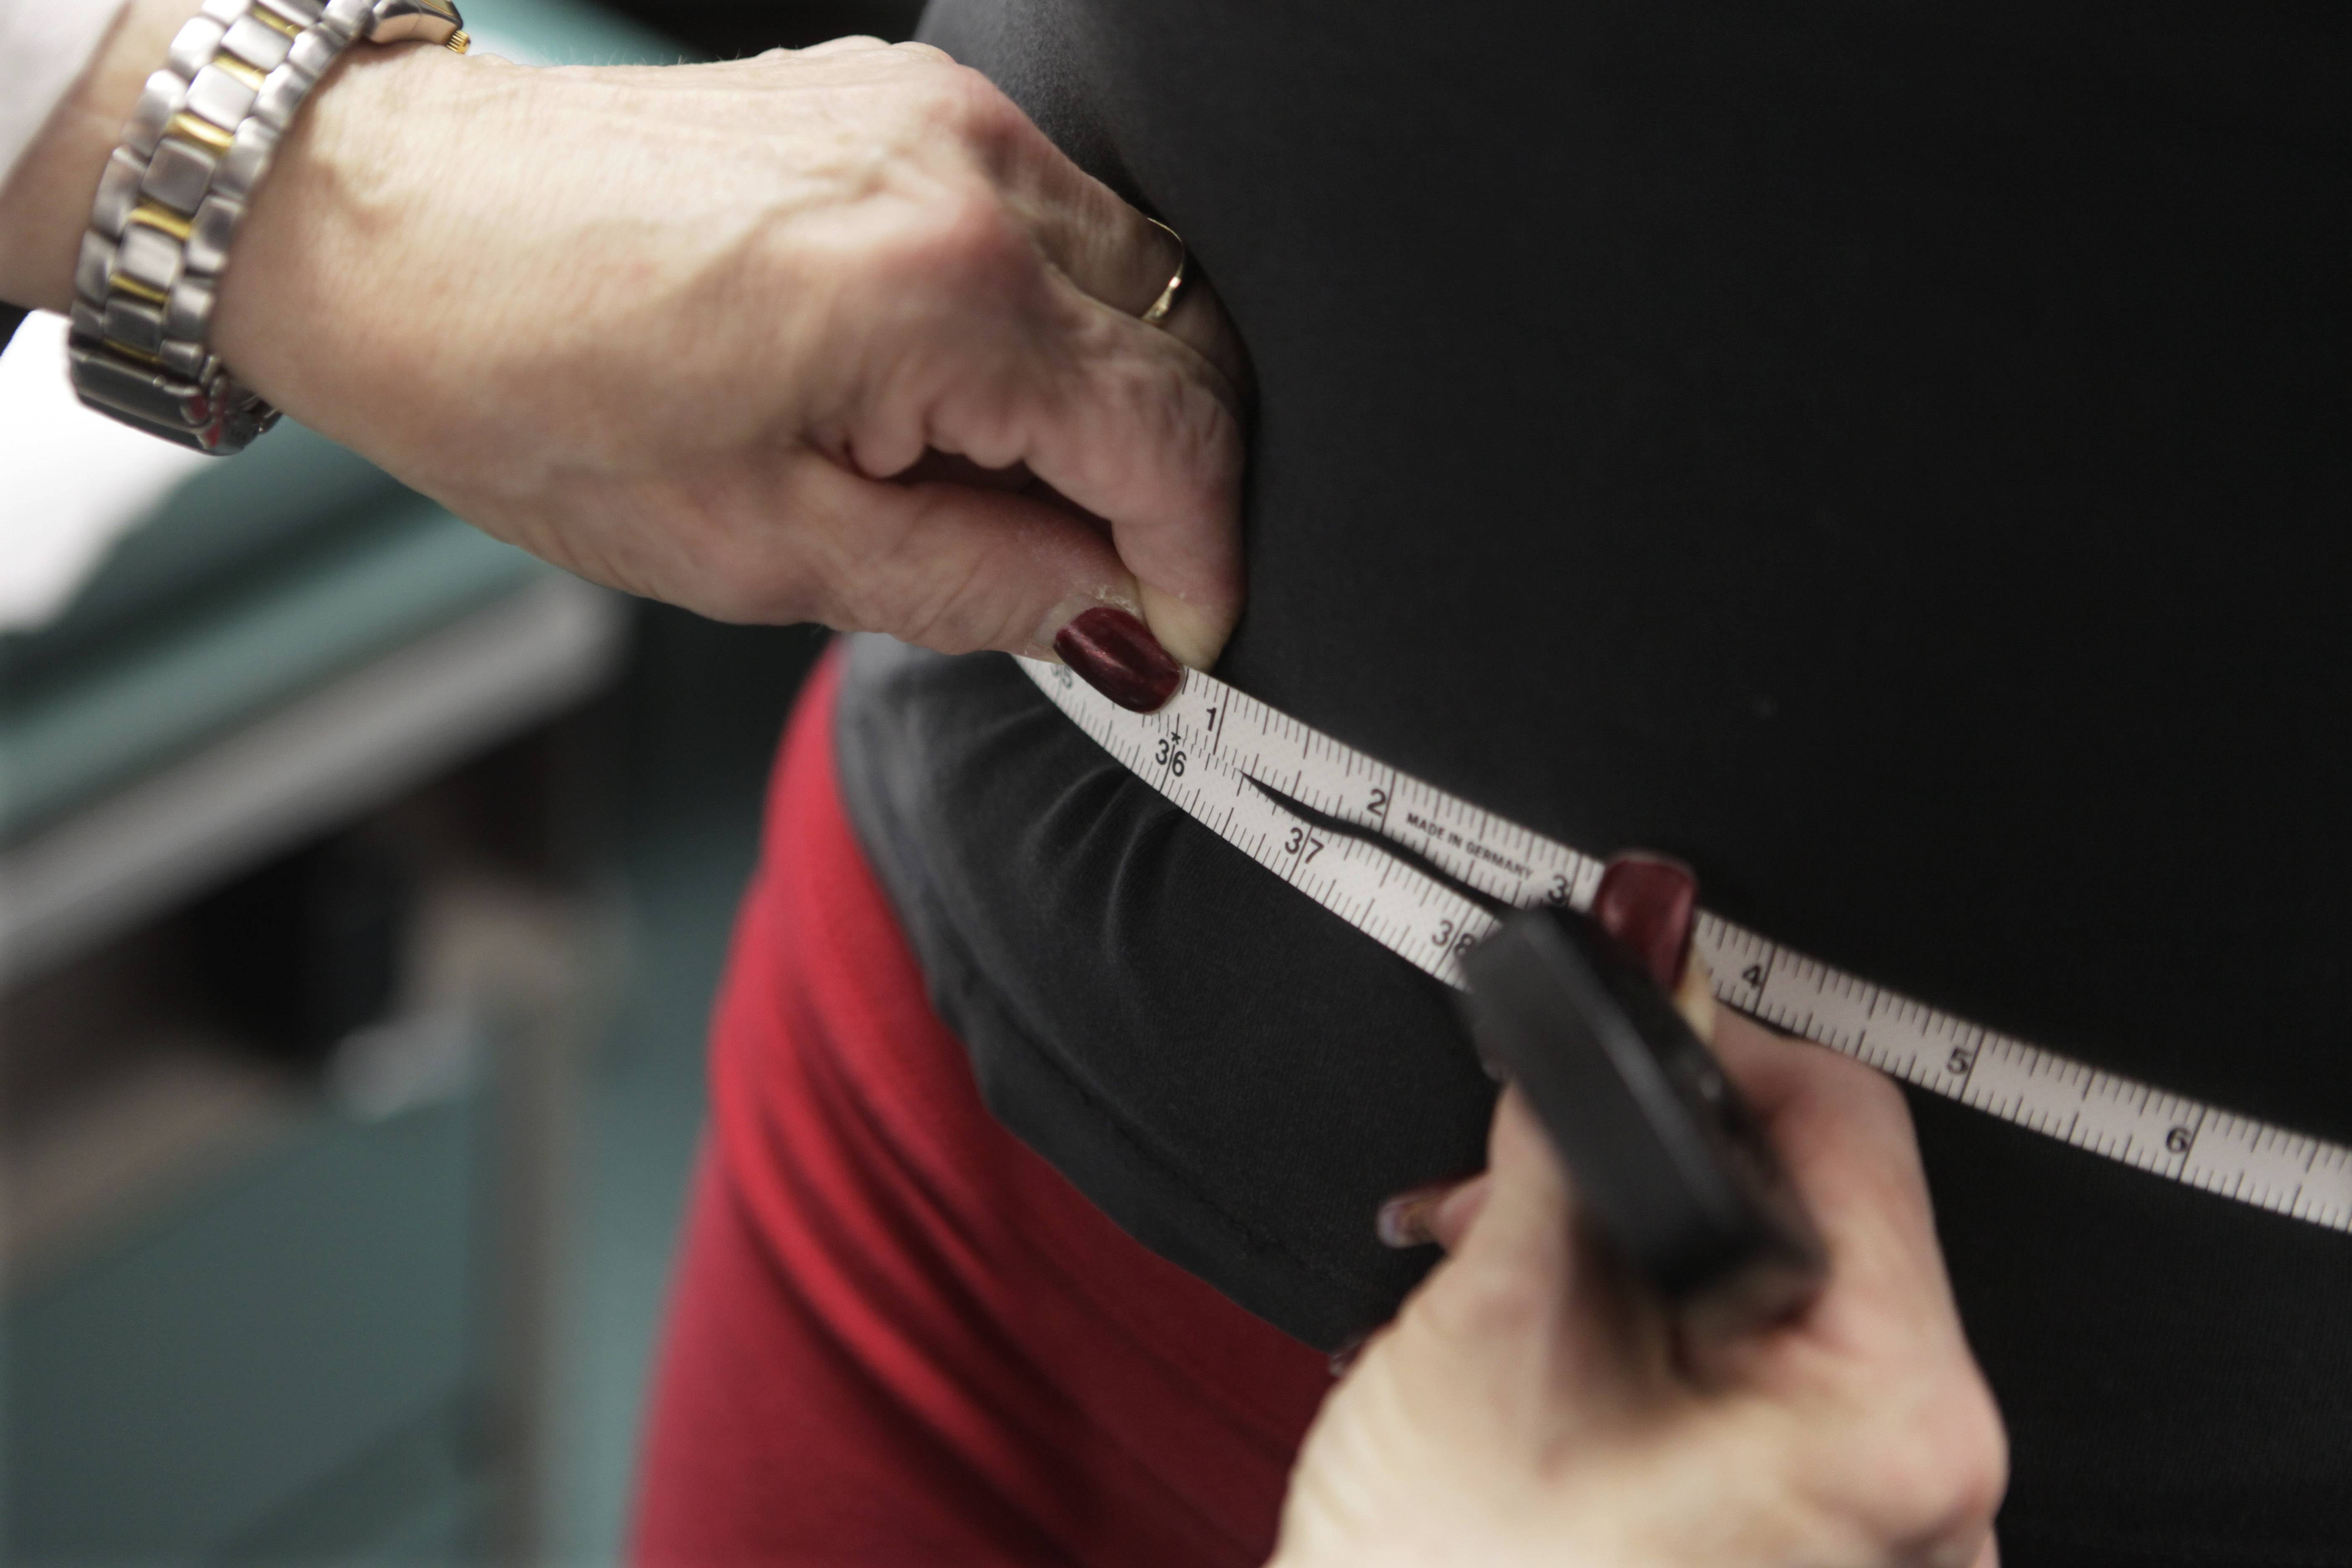 Having a high body mass index is less likely to cause a heart attack than it is to give you diabetes, a new study shows.